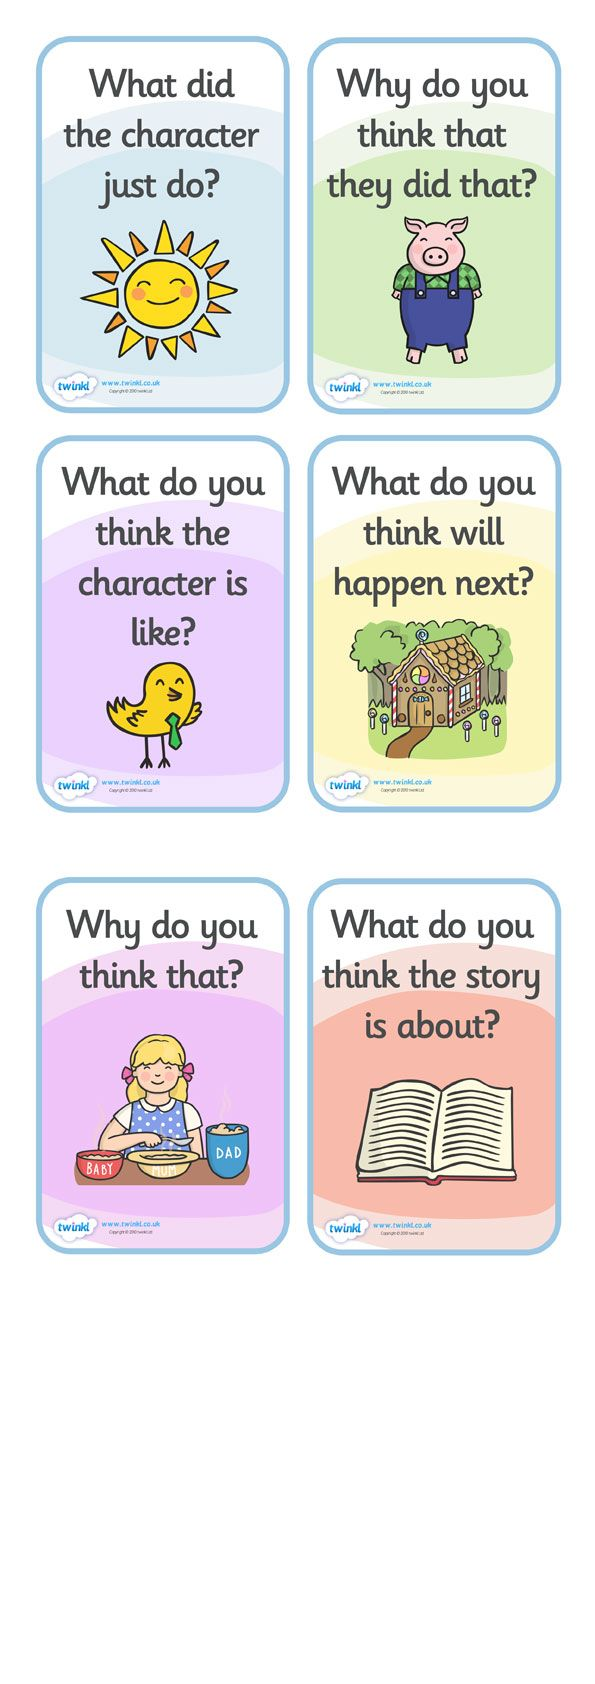 Twinkl Resources >> free printables. Reading Prompts for Parents  >> Thousands of printable primary teaching resources for EYFS, KS1, KS2 and beyond! reading, home school